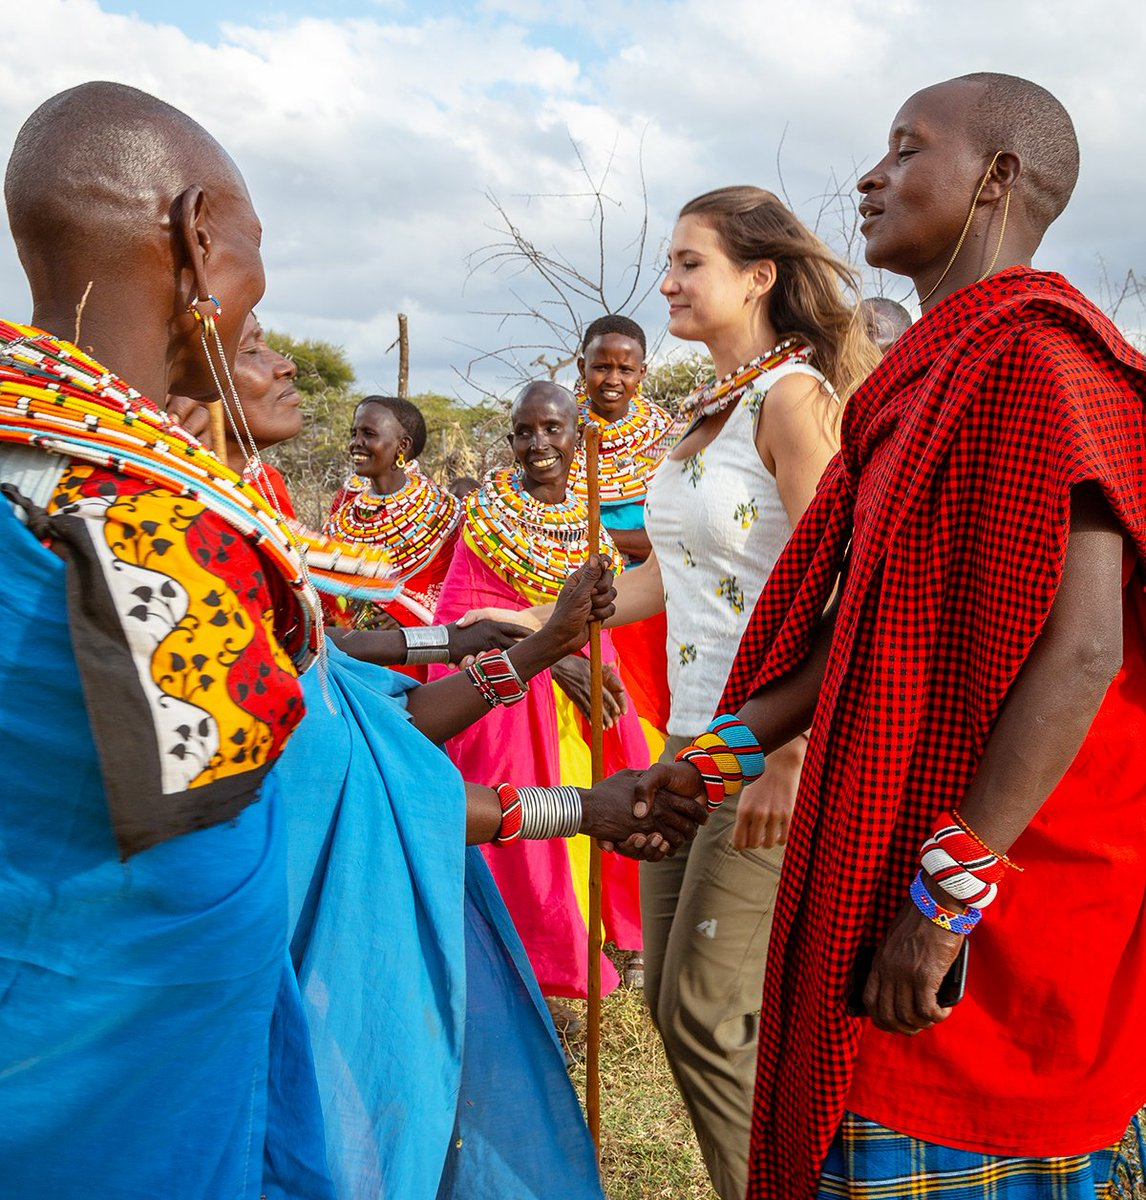 In Kenya, visiting a local tribe can provide travelers with a chance to experience unique and treasured cultures first-hand #kenya #swaindestinations